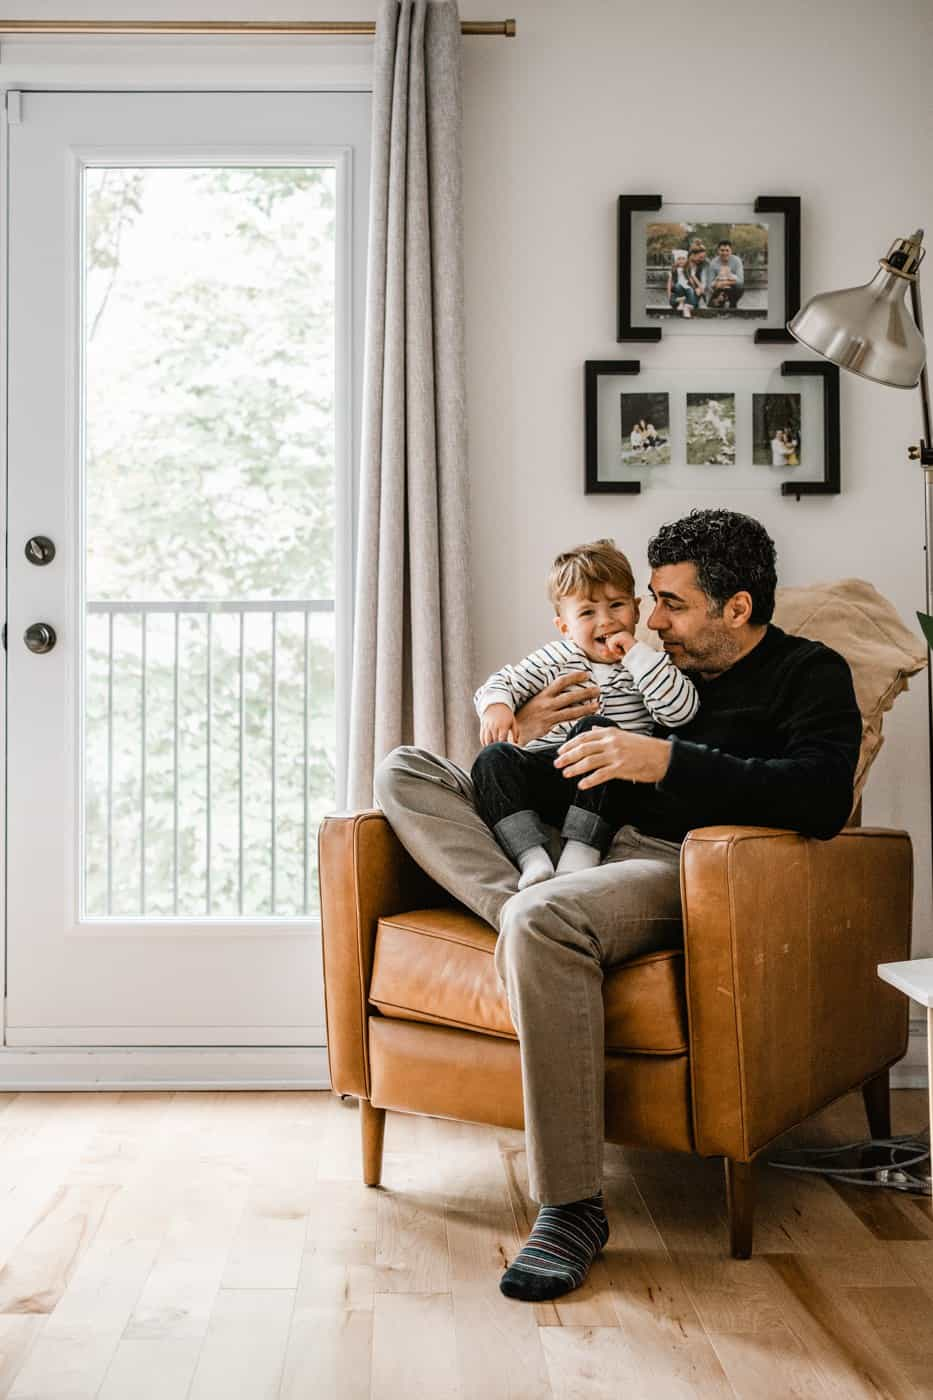 Man and son sitting on brown leather chair